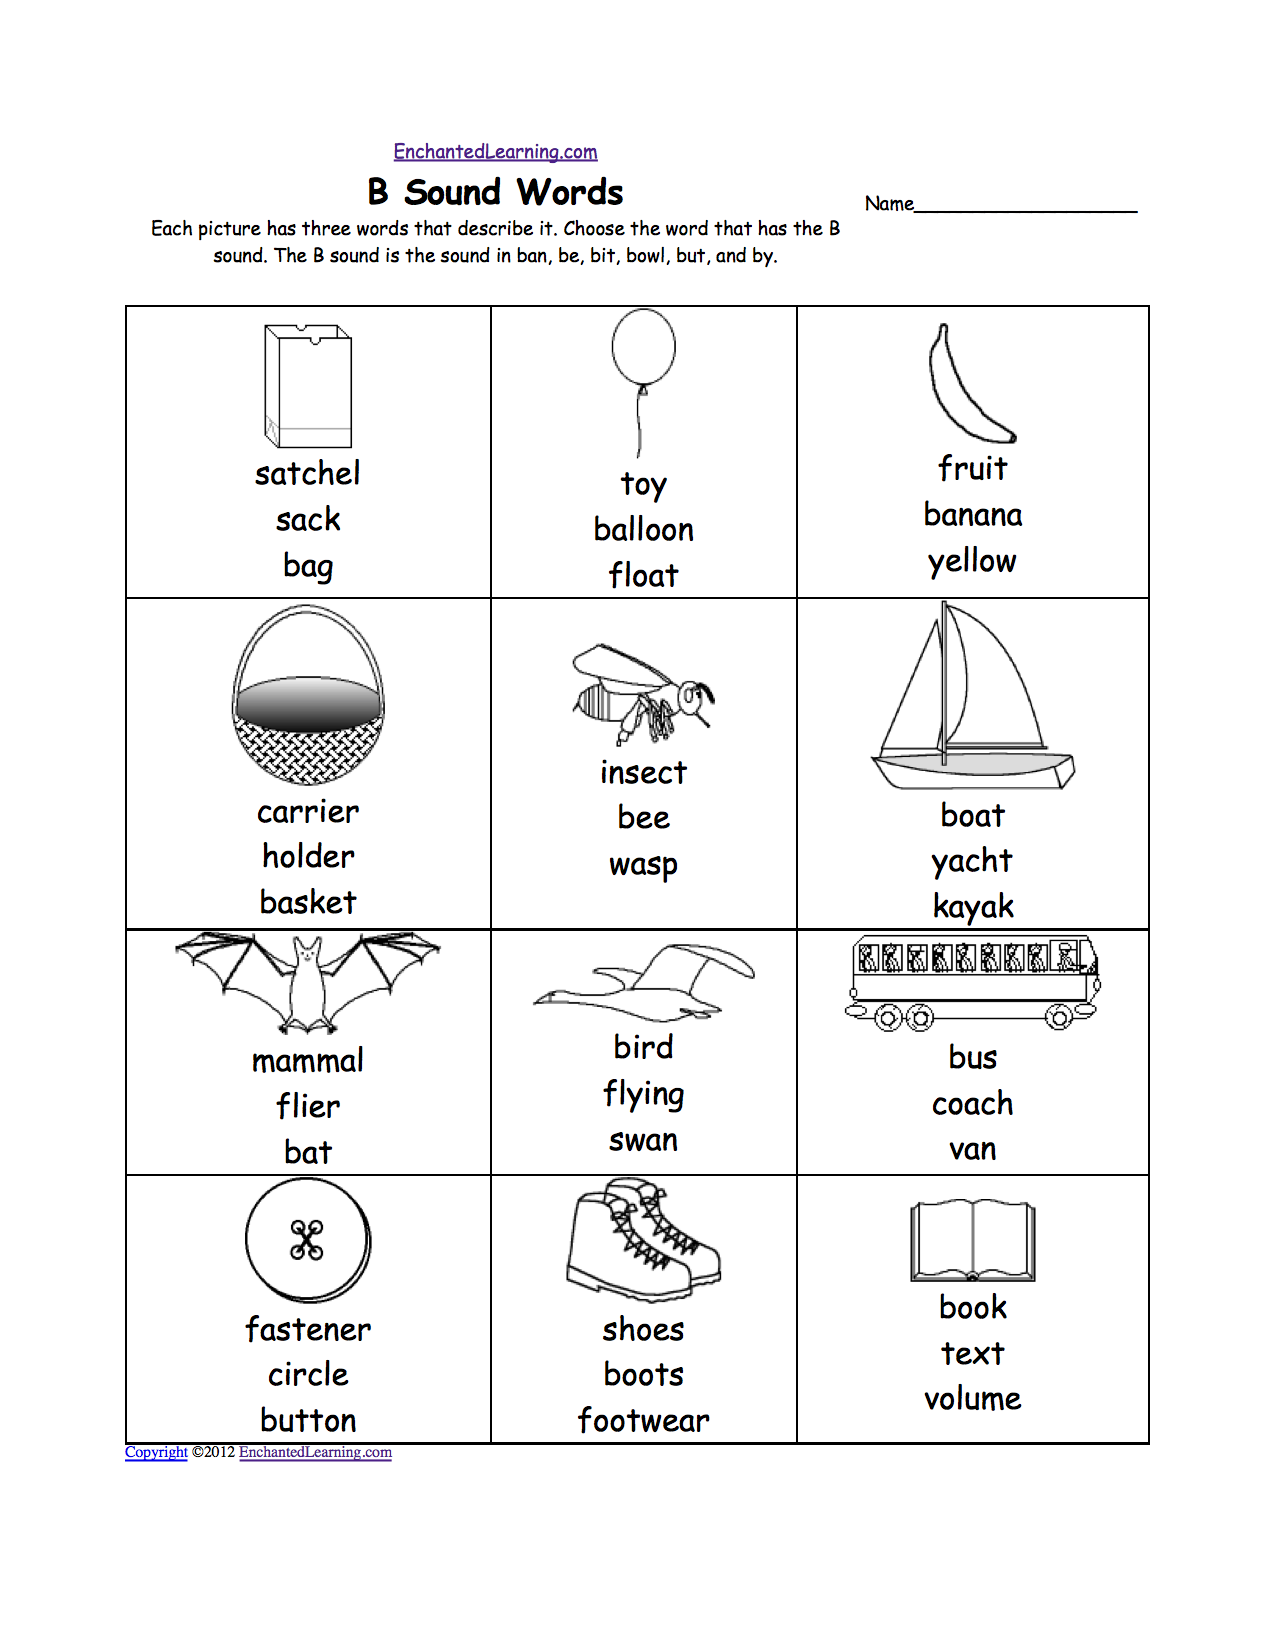 Aldiablosus  Stunning Phonics Worksheets Multiple Choice Worksheets To Print  With Lovely Quotbquot Sound Phonics Worksheet Multiple Choice Each Picture Has Three Words That Describe It Choose The Word That Has A Quotbquot Sound The Quotbquot Sound Is The Sound  With Beauteous Estimating Differences Worksheet Also Weather Forecast Worksheet In Addition Continent Map Worksheet And Meiosis And Mitosis Worksheet As Well As Goal Setting Worksheet For Adults Additionally Multiplication Math Facts Worksheet From Enchantedlearningcom With Aldiablosus  Lovely Phonics Worksheets Multiple Choice Worksheets To Print  With Beauteous Quotbquot Sound Phonics Worksheet Multiple Choice Each Picture Has Three Words That Describe It Choose The Word That Has A Quotbquot Sound The Quotbquot Sound Is The Sound  And Stunning Estimating Differences Worksheet Also Weather Forecast Worksheet In Addition Continent Map Worksheet From Enchantedlearningcom